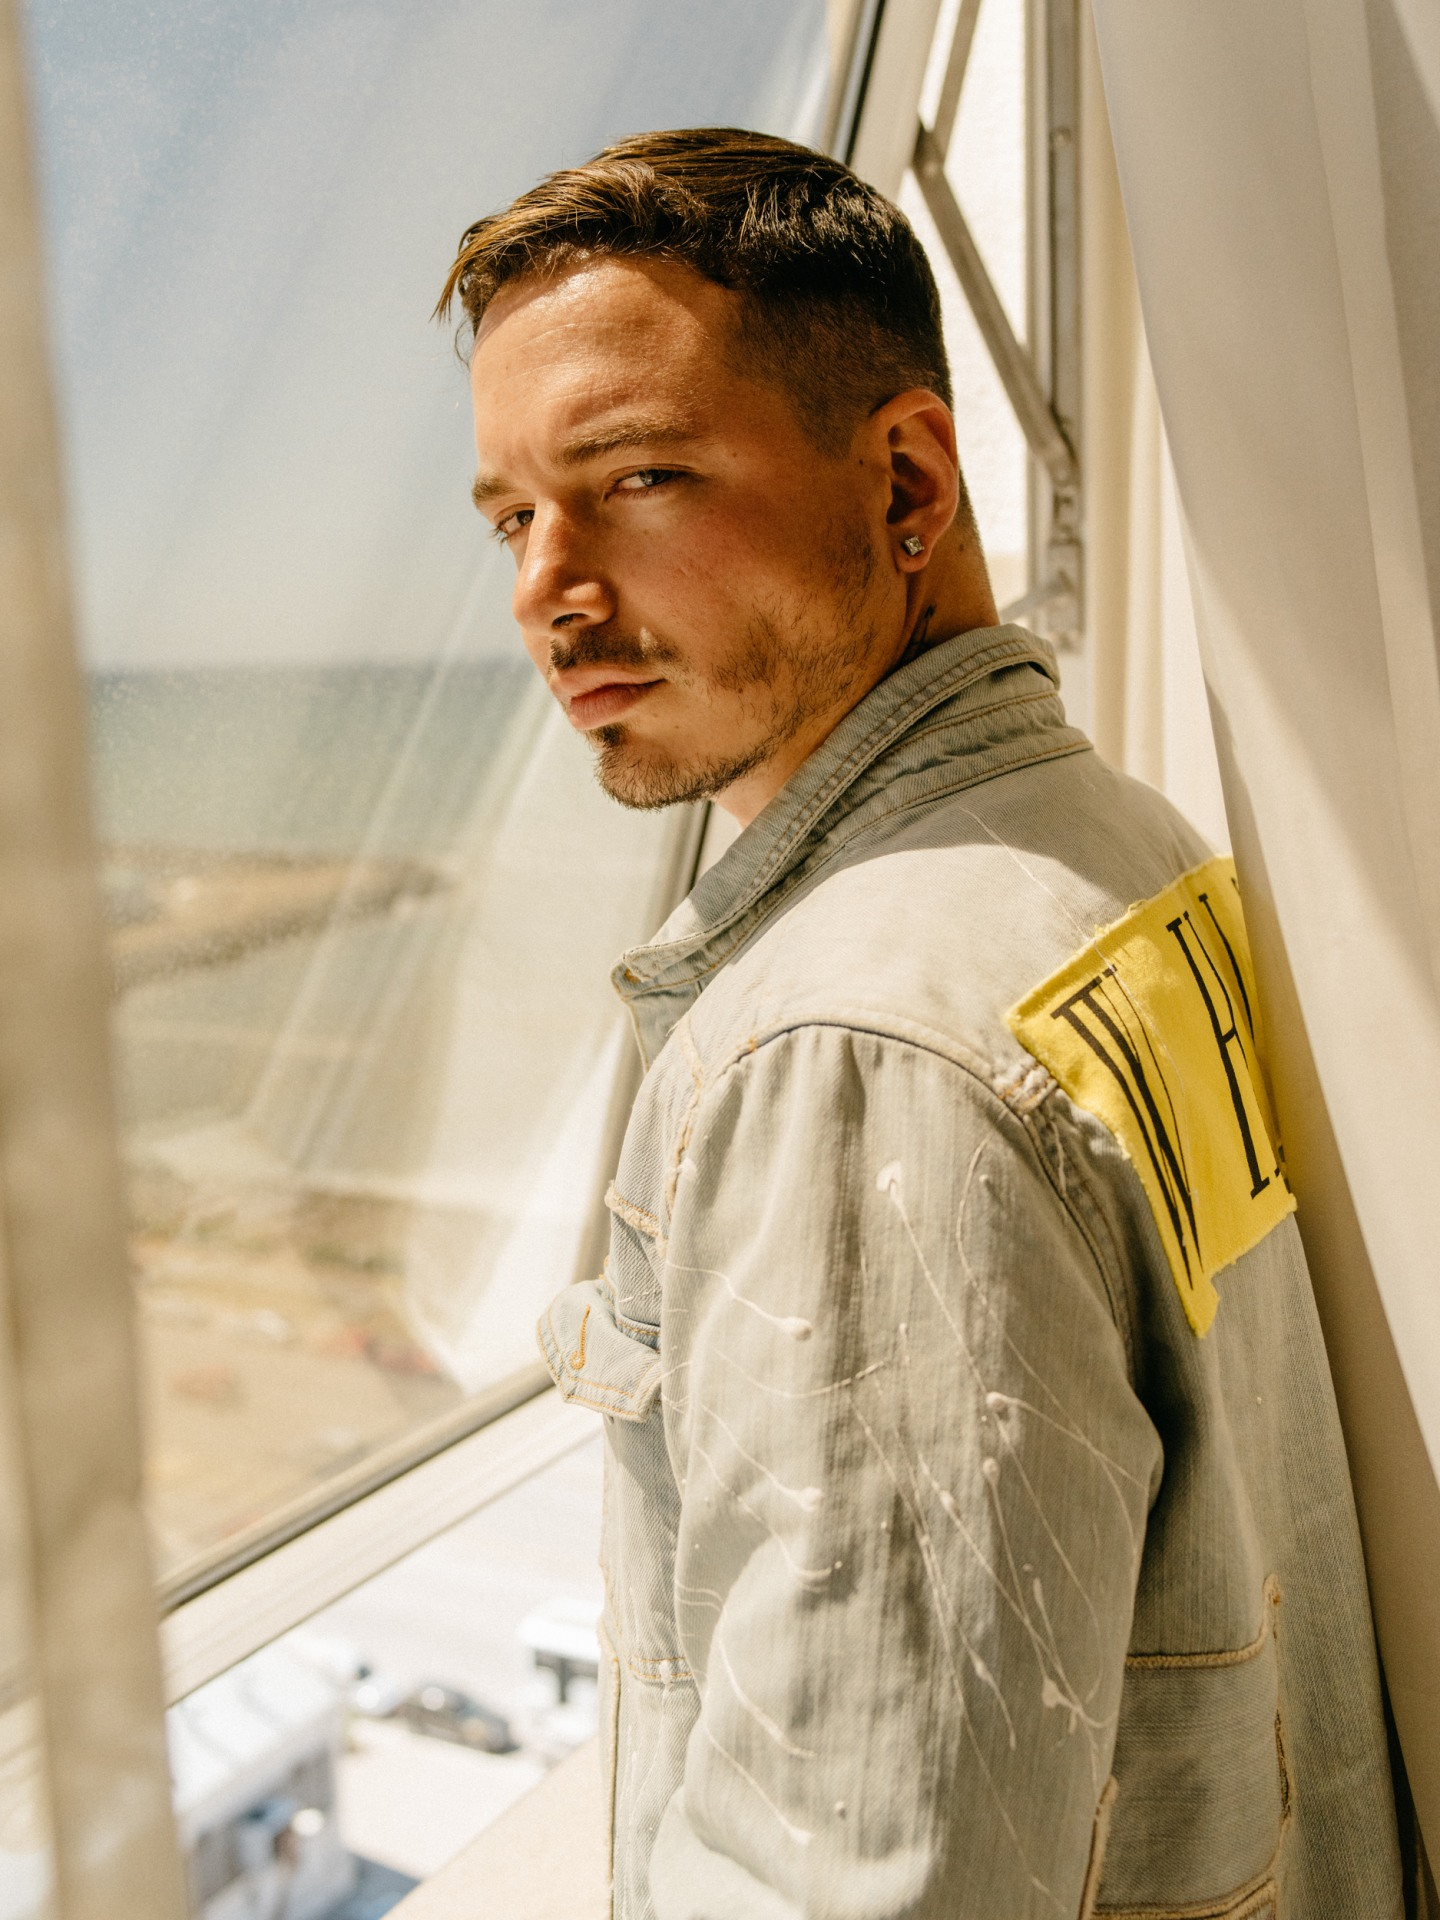 For J Balvin, Dignity Is Not Negotiable